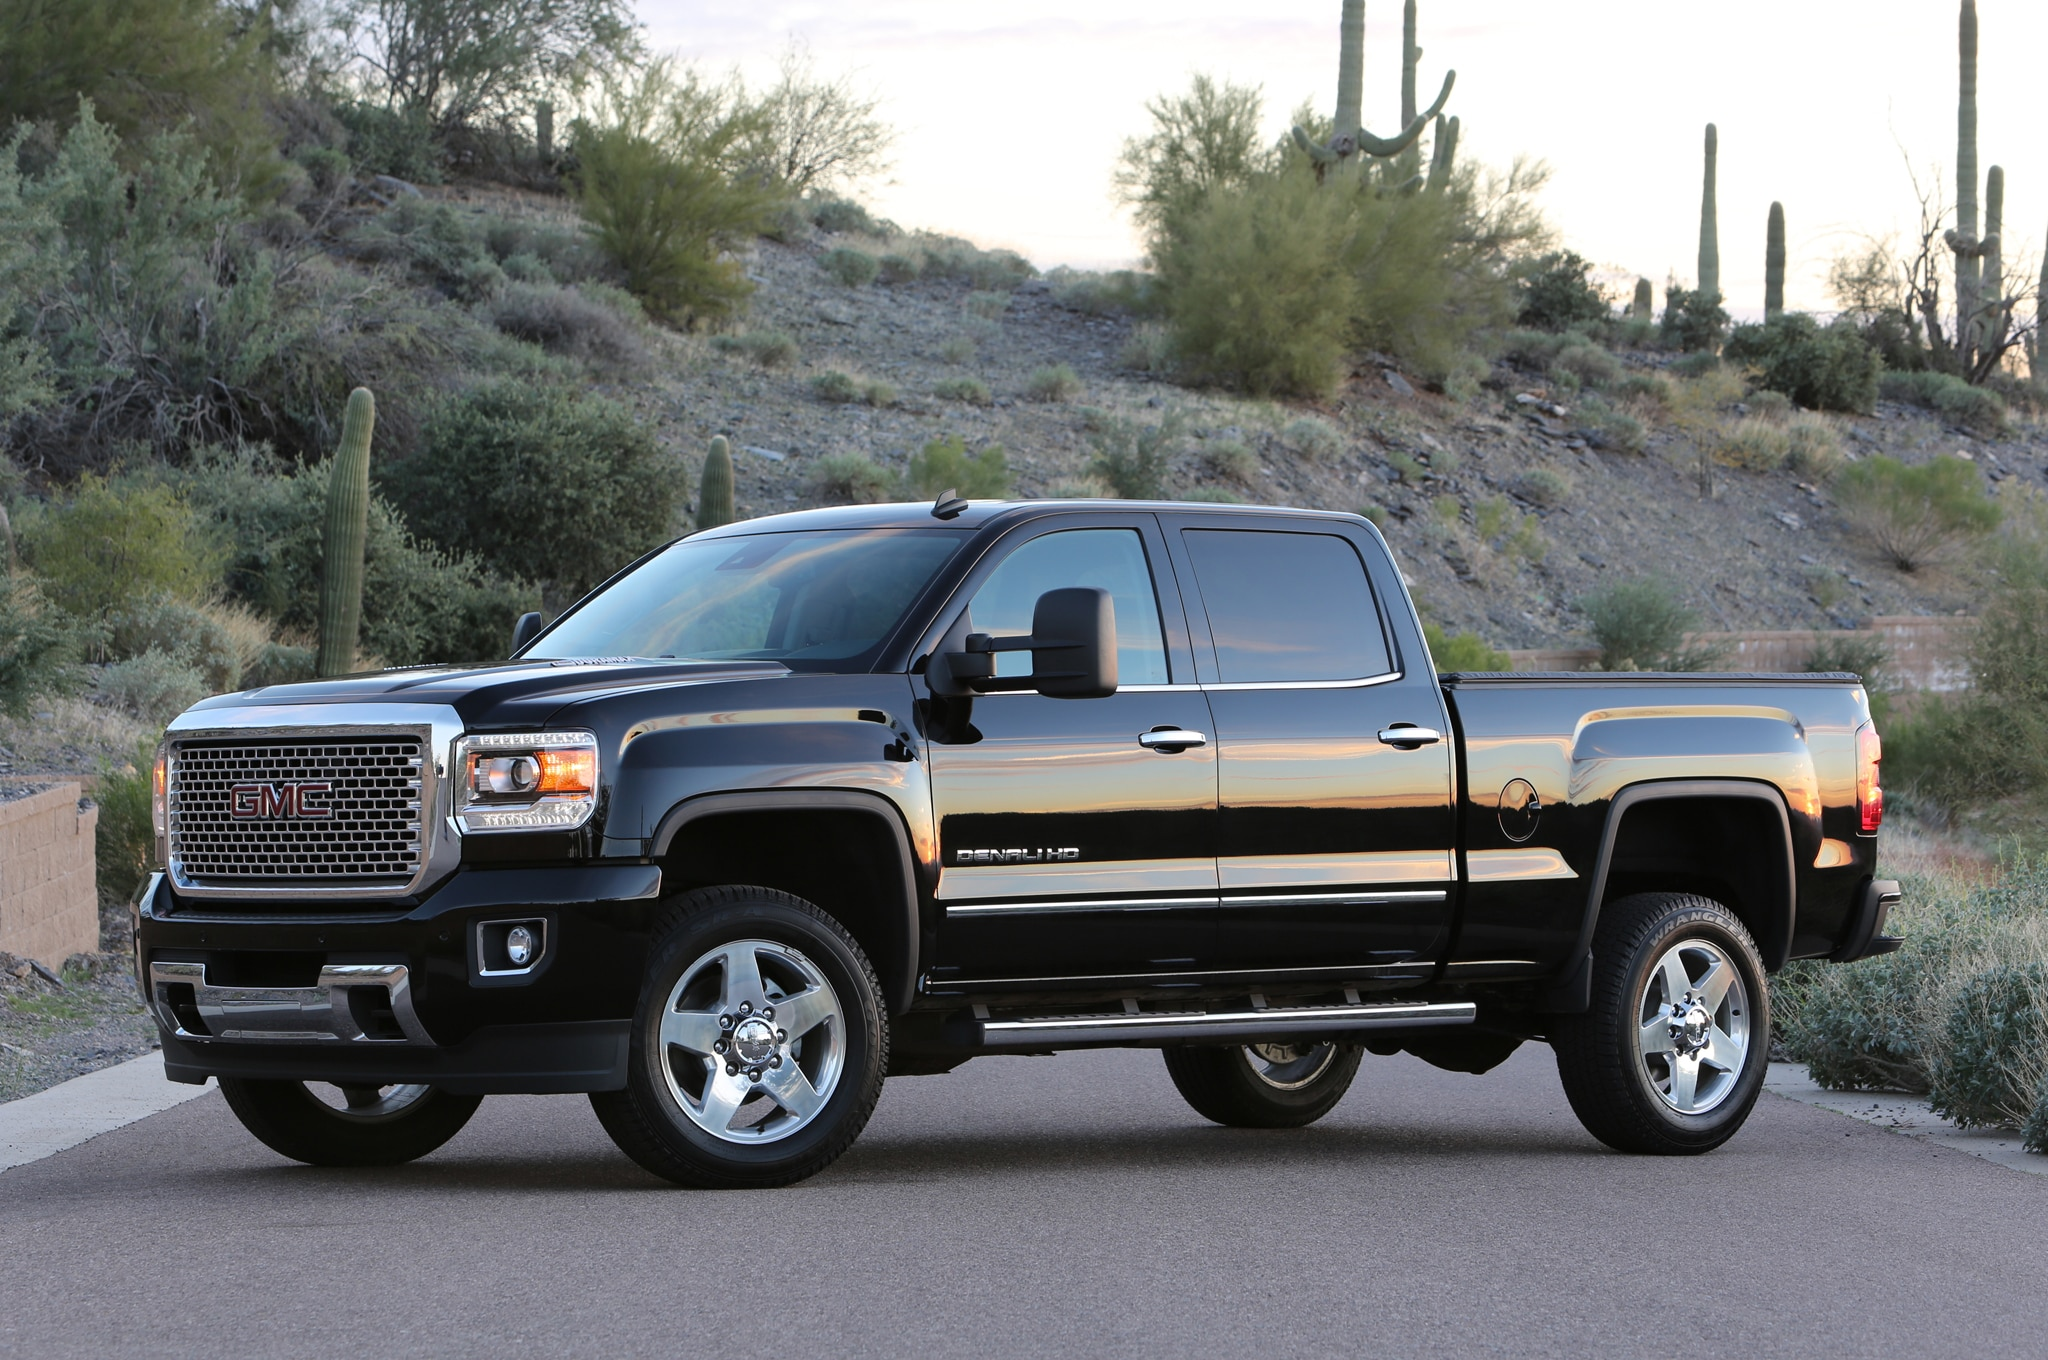 2015 GMC Sierra 2500HD Denali front drivers side view